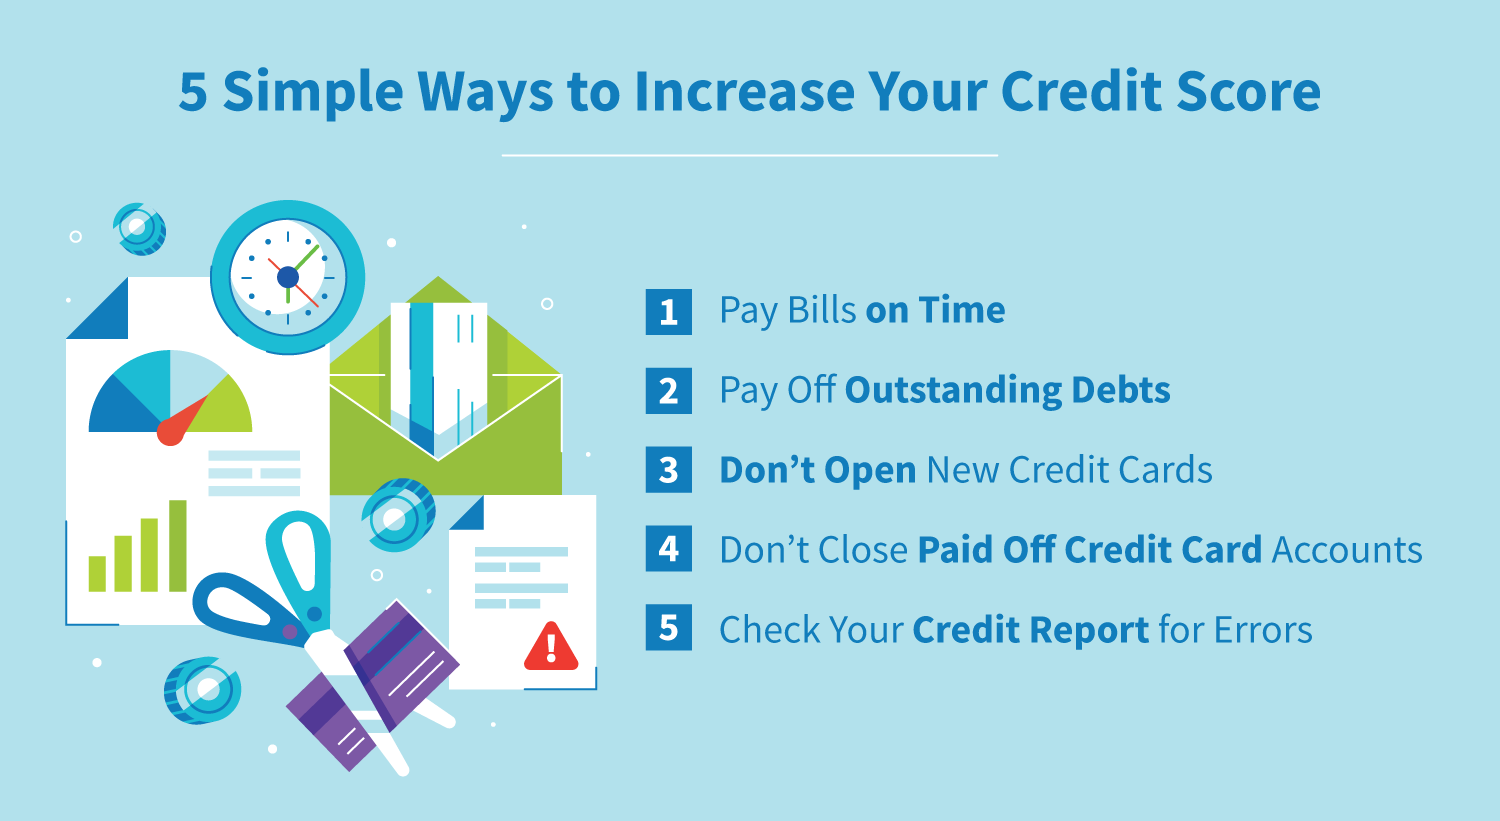 5 simple ways to increase your credit score.